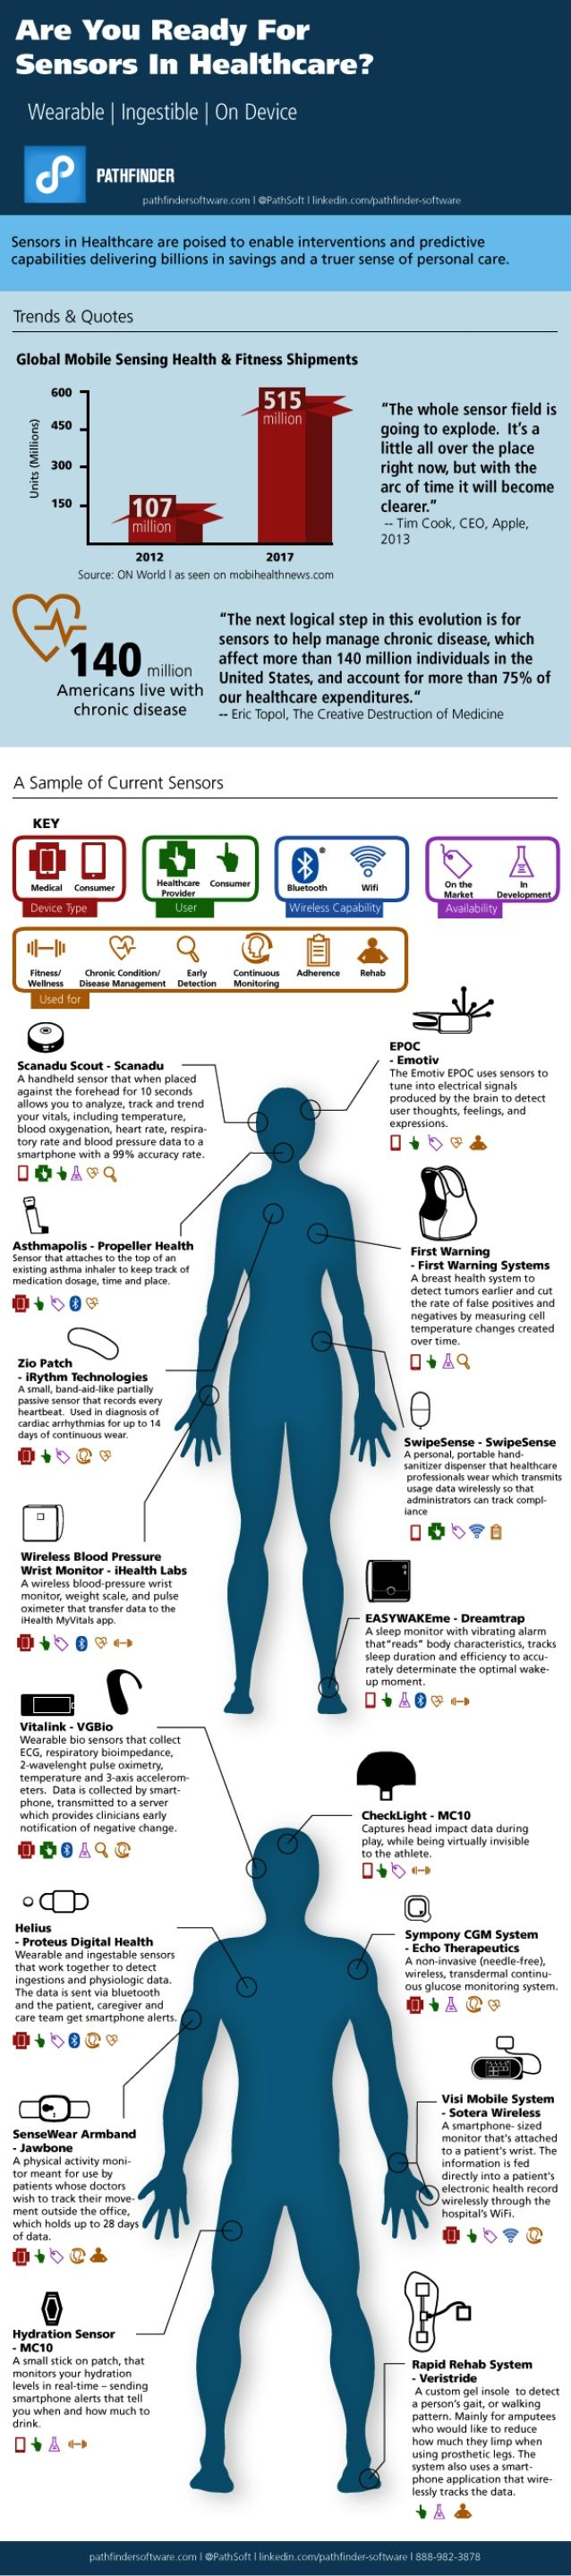 Are You Ready for Sensors in Healthcare ? [Infographic] Wearables - ingestibles - on device 03/2015